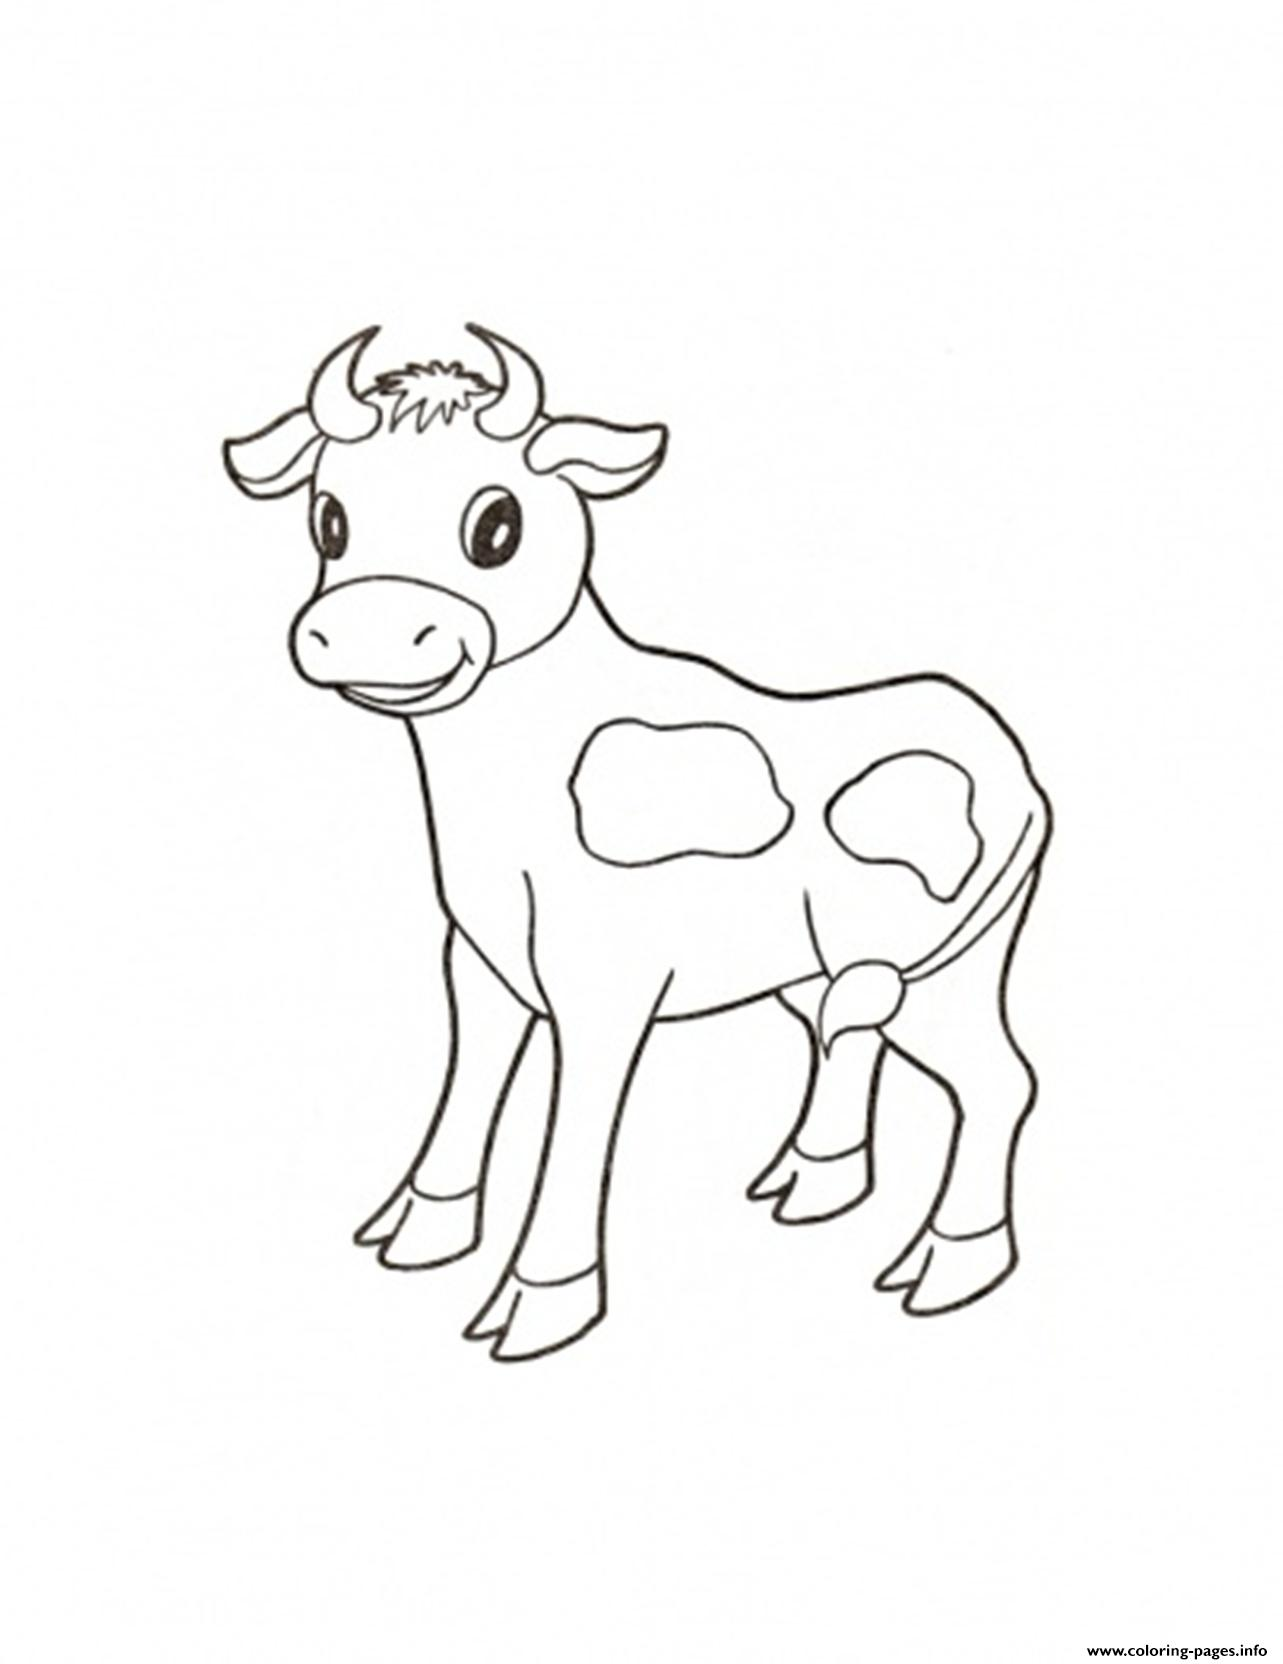 Cute Calf Farm Animal S32ee Coloring Pages Printable